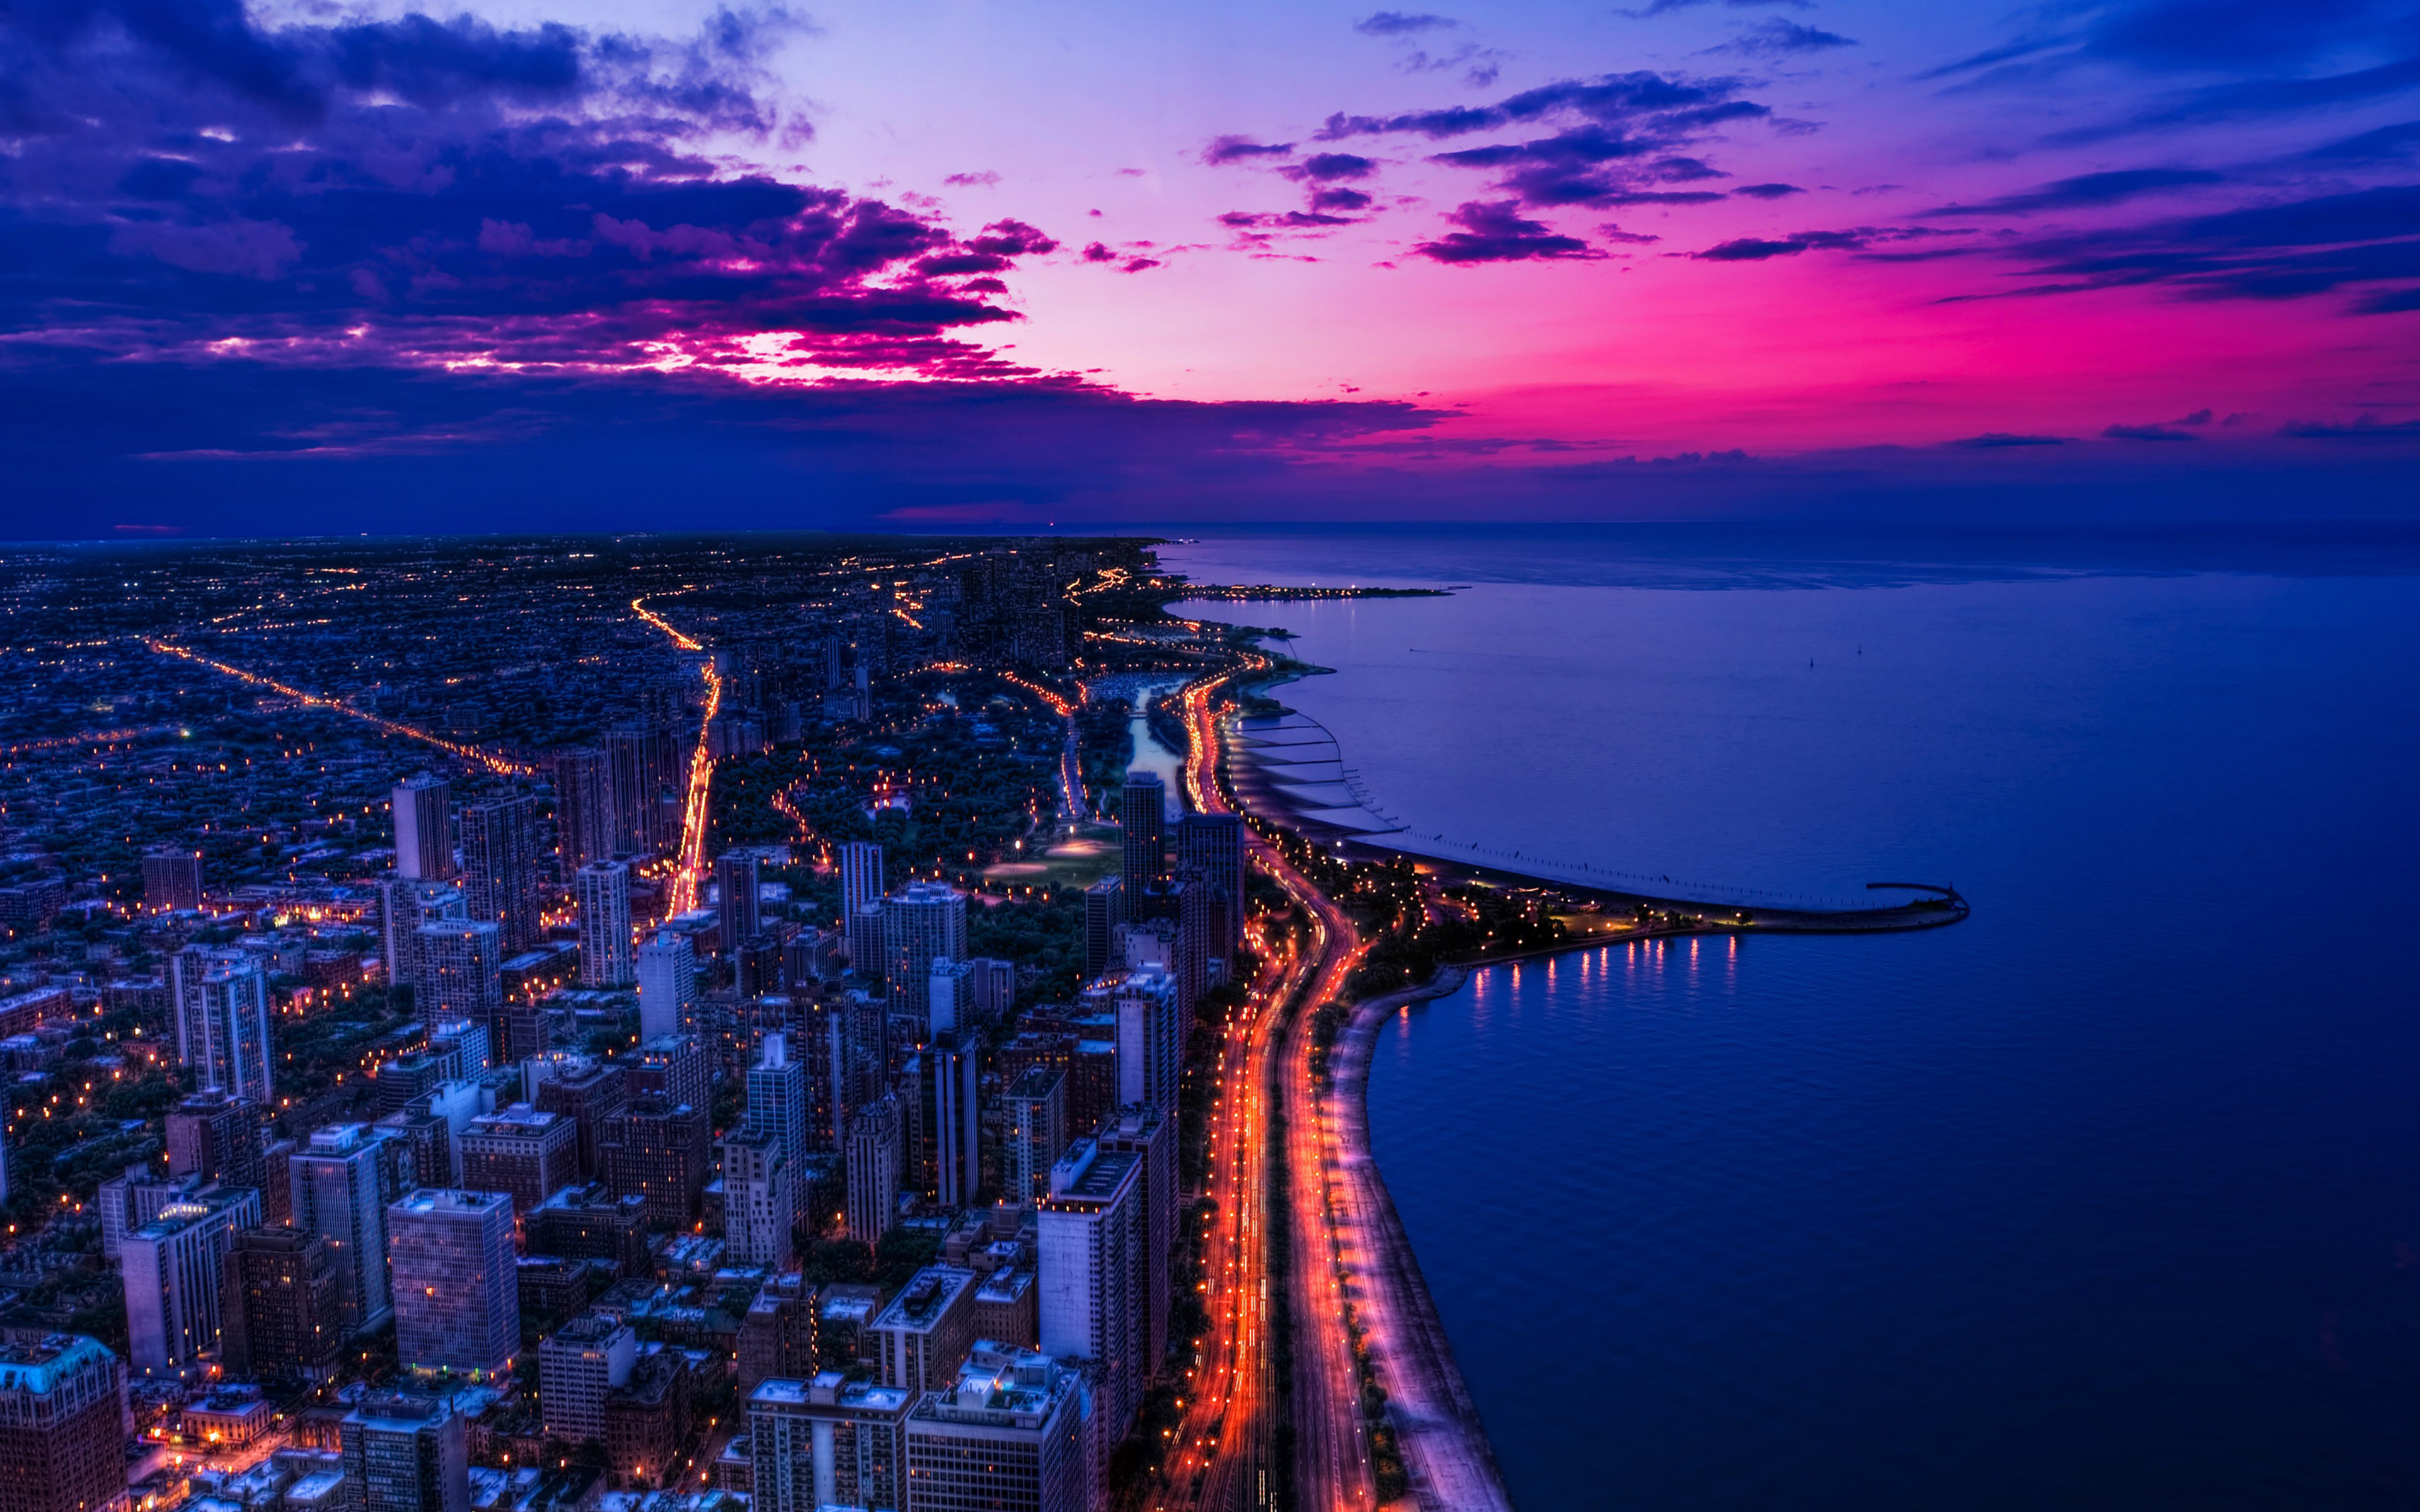 Car Wallpaper 1280x1024 Mh45 Chicago City Night Sky View Scape Ocean Beach Papers Co